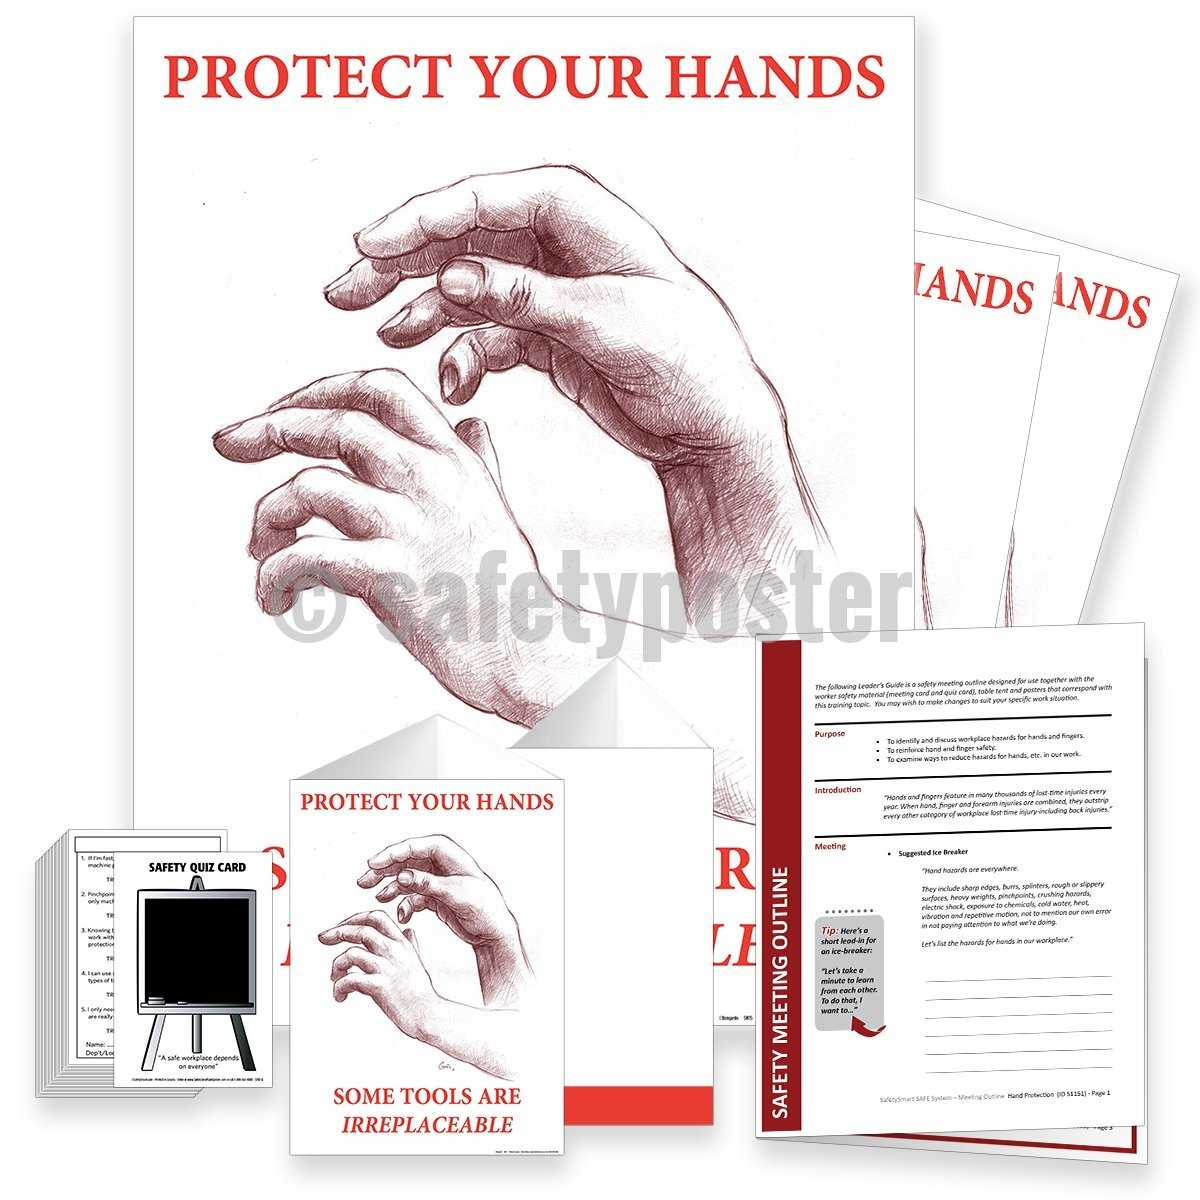 Safety Meeting Kit - Protect Your Hands Some Tools Are Irreplaceable Kits